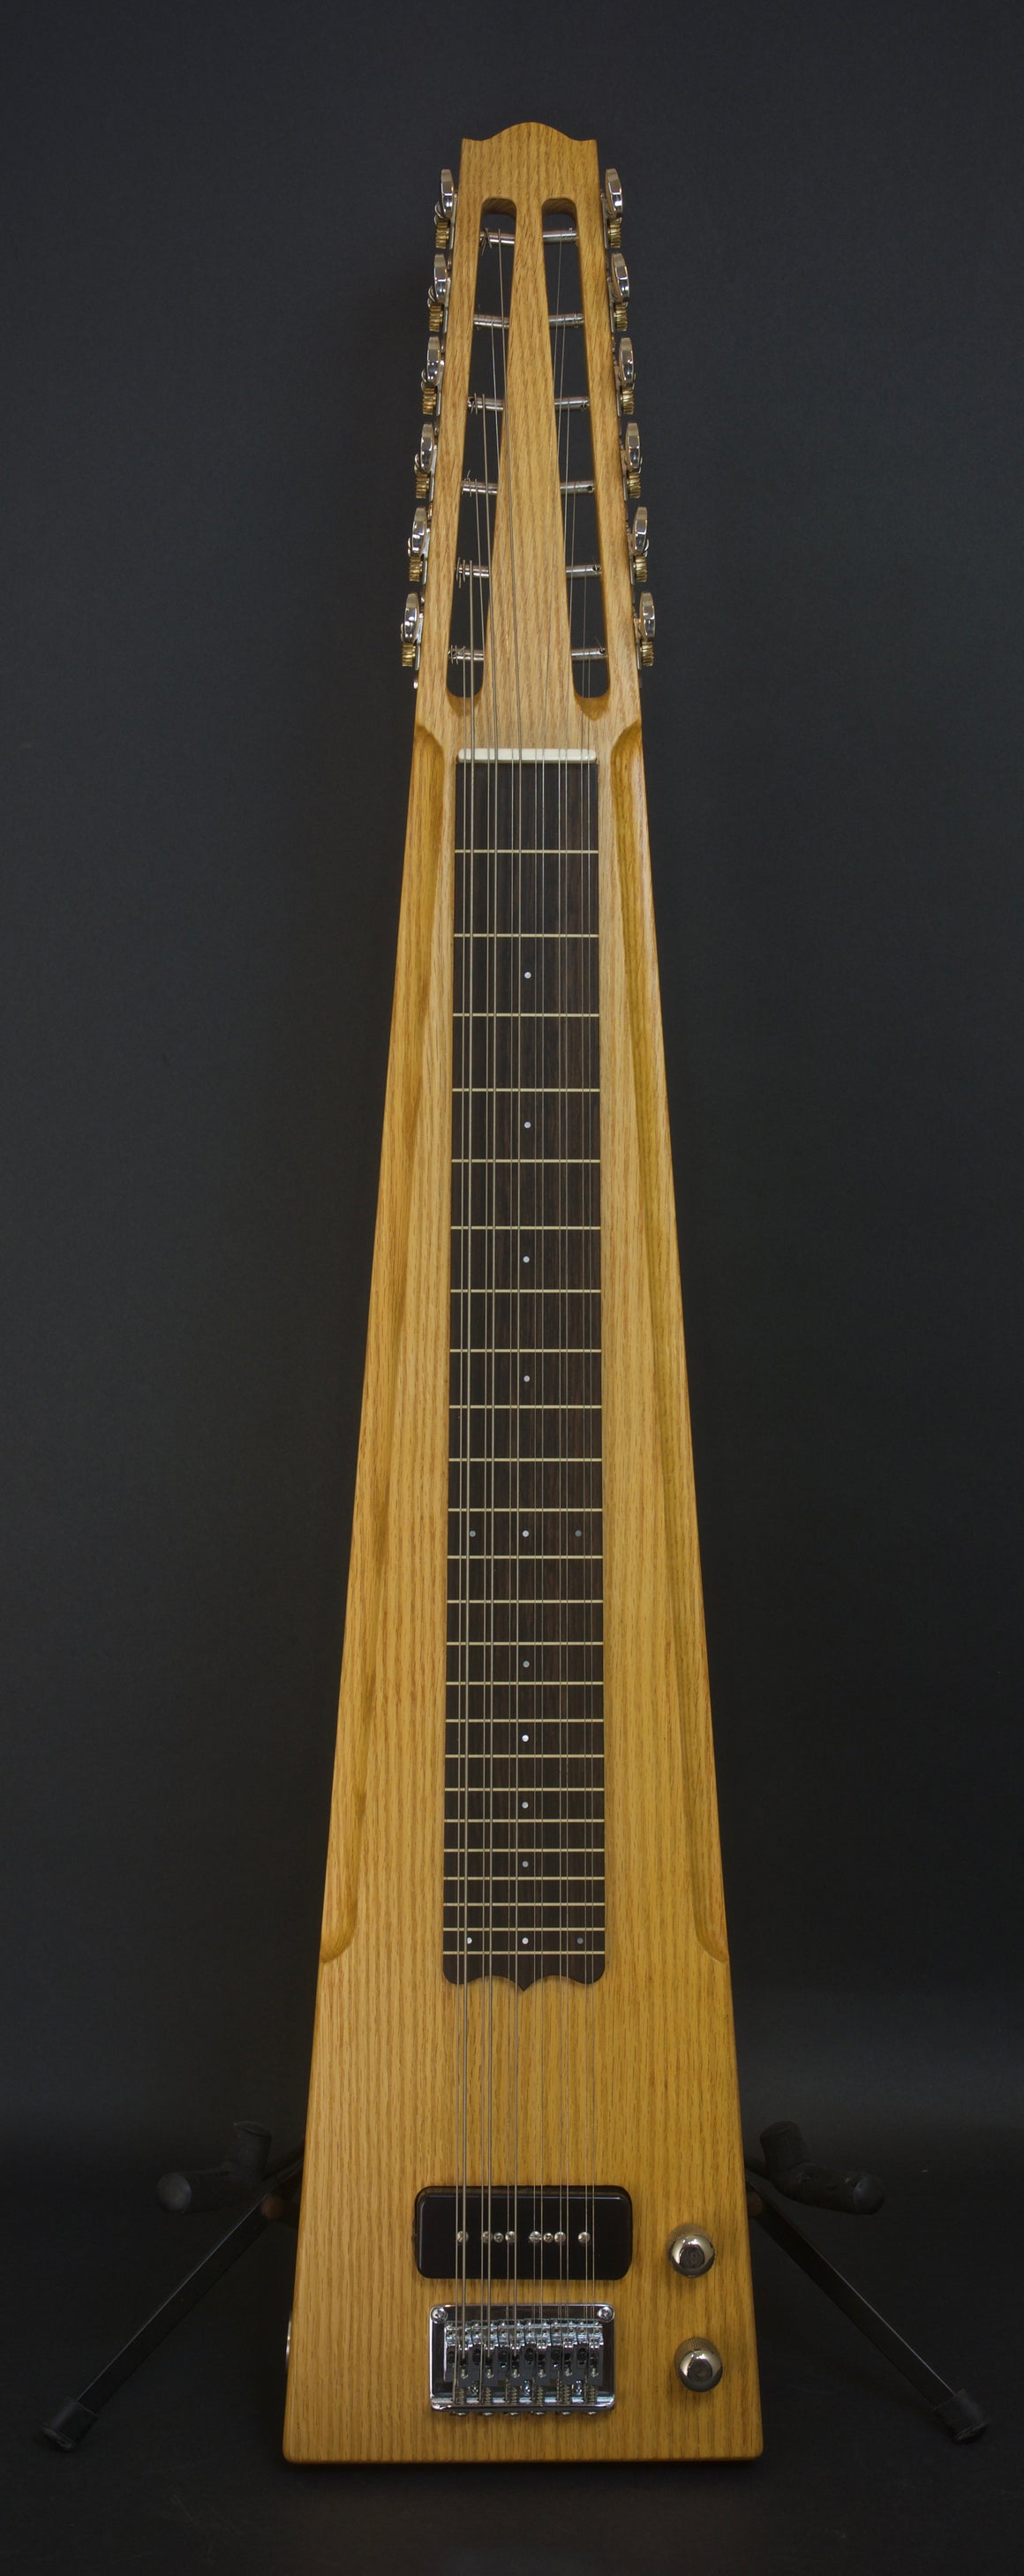 SOLD 2018 Asher Electro Hawaiian 12-String Lap Steel Custom Shop, Red Oak, #1105, #2 of 2